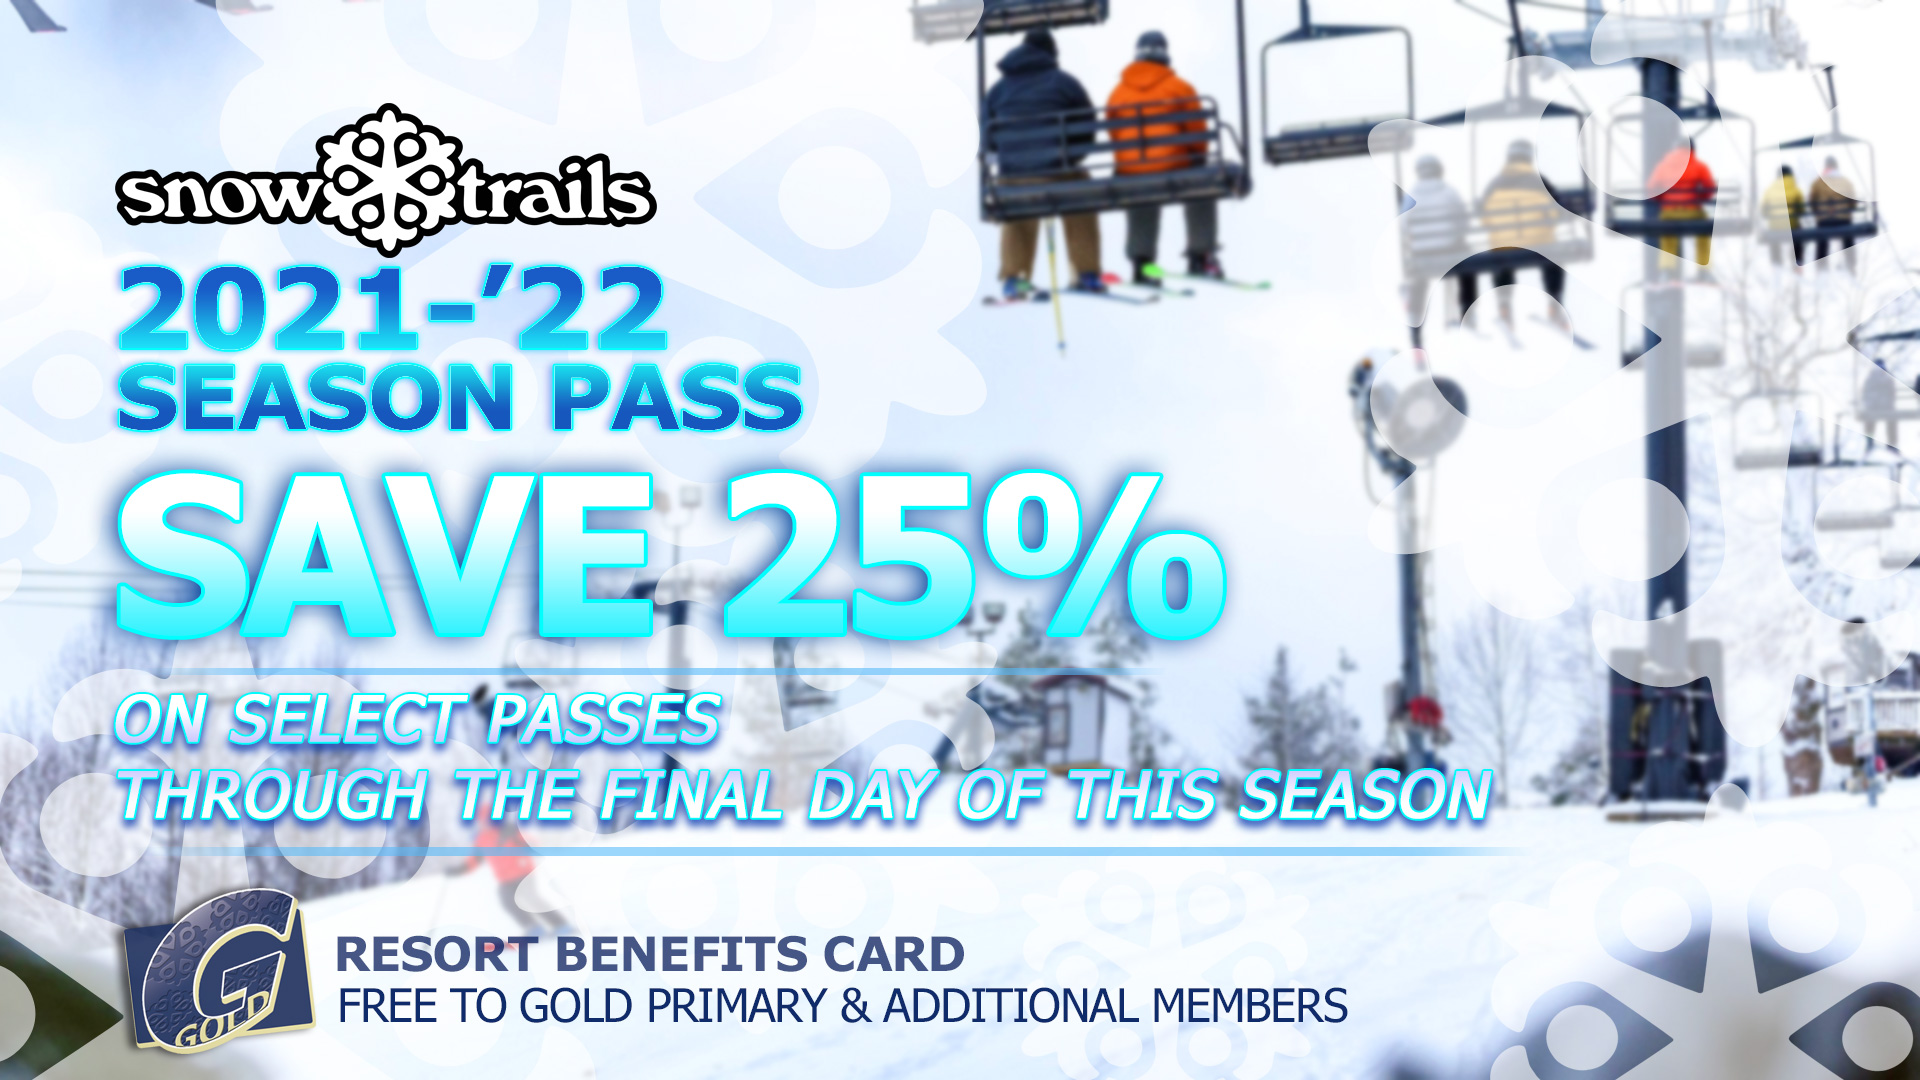 Season Passes: Save 25% Thru Final Day Of Season